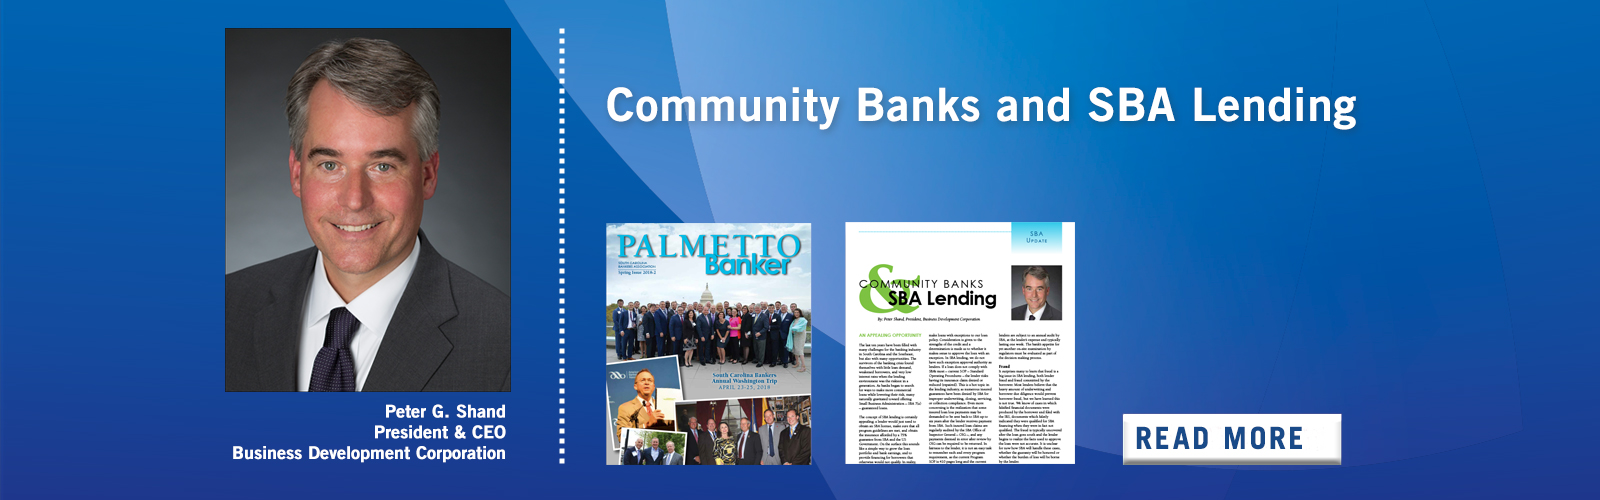 Community Banks and SBA Lending